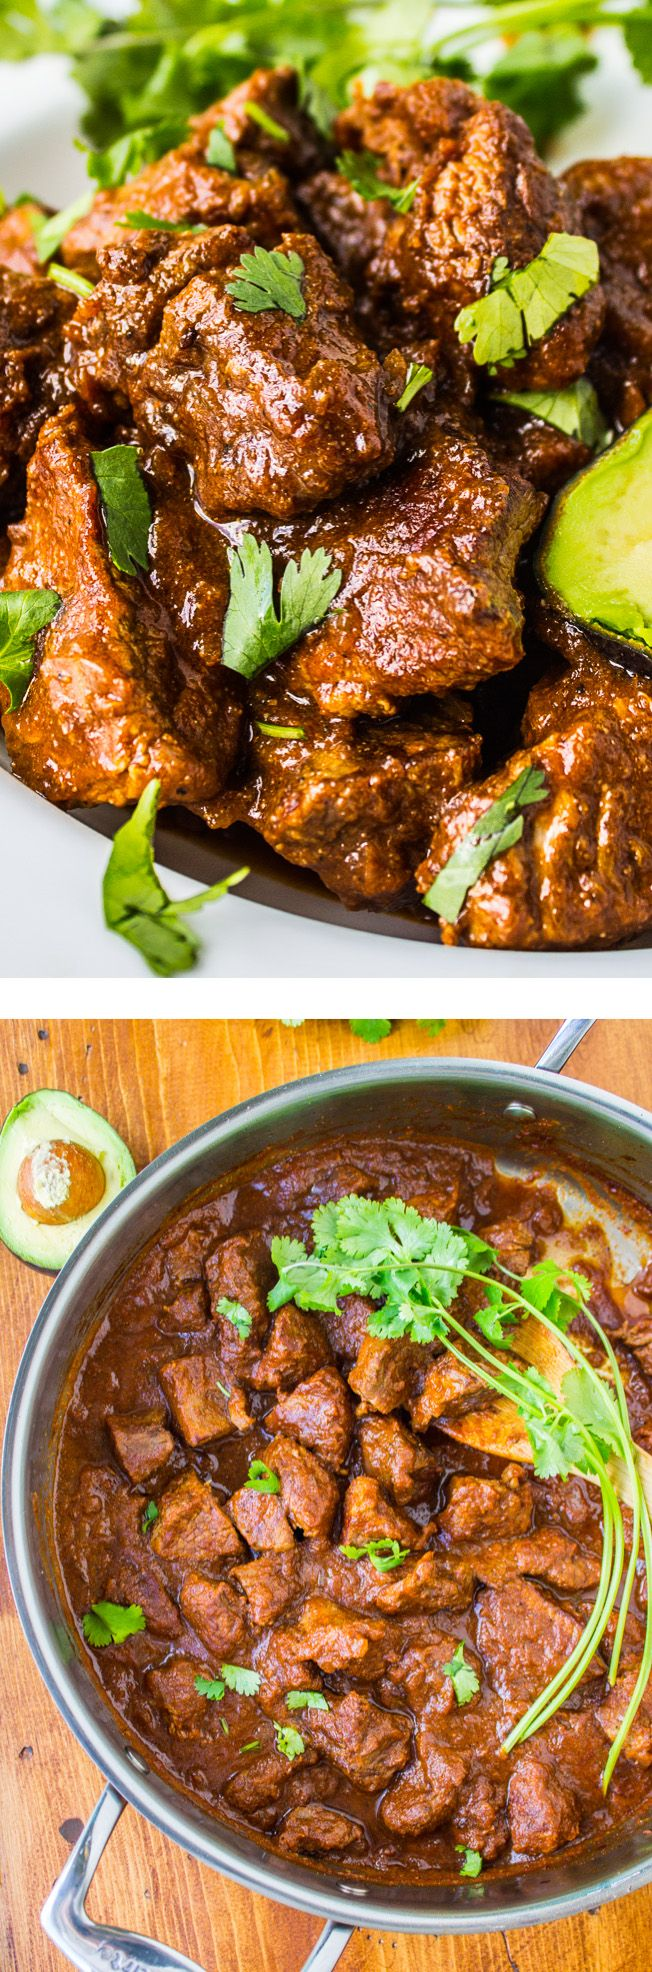 Traditional Tejano Carne Guisada (Braised Beef for Tacos) from The Food Charlatan // This recipe is SO easy, with ingredients you probably have on hand. The best taco meat ever.